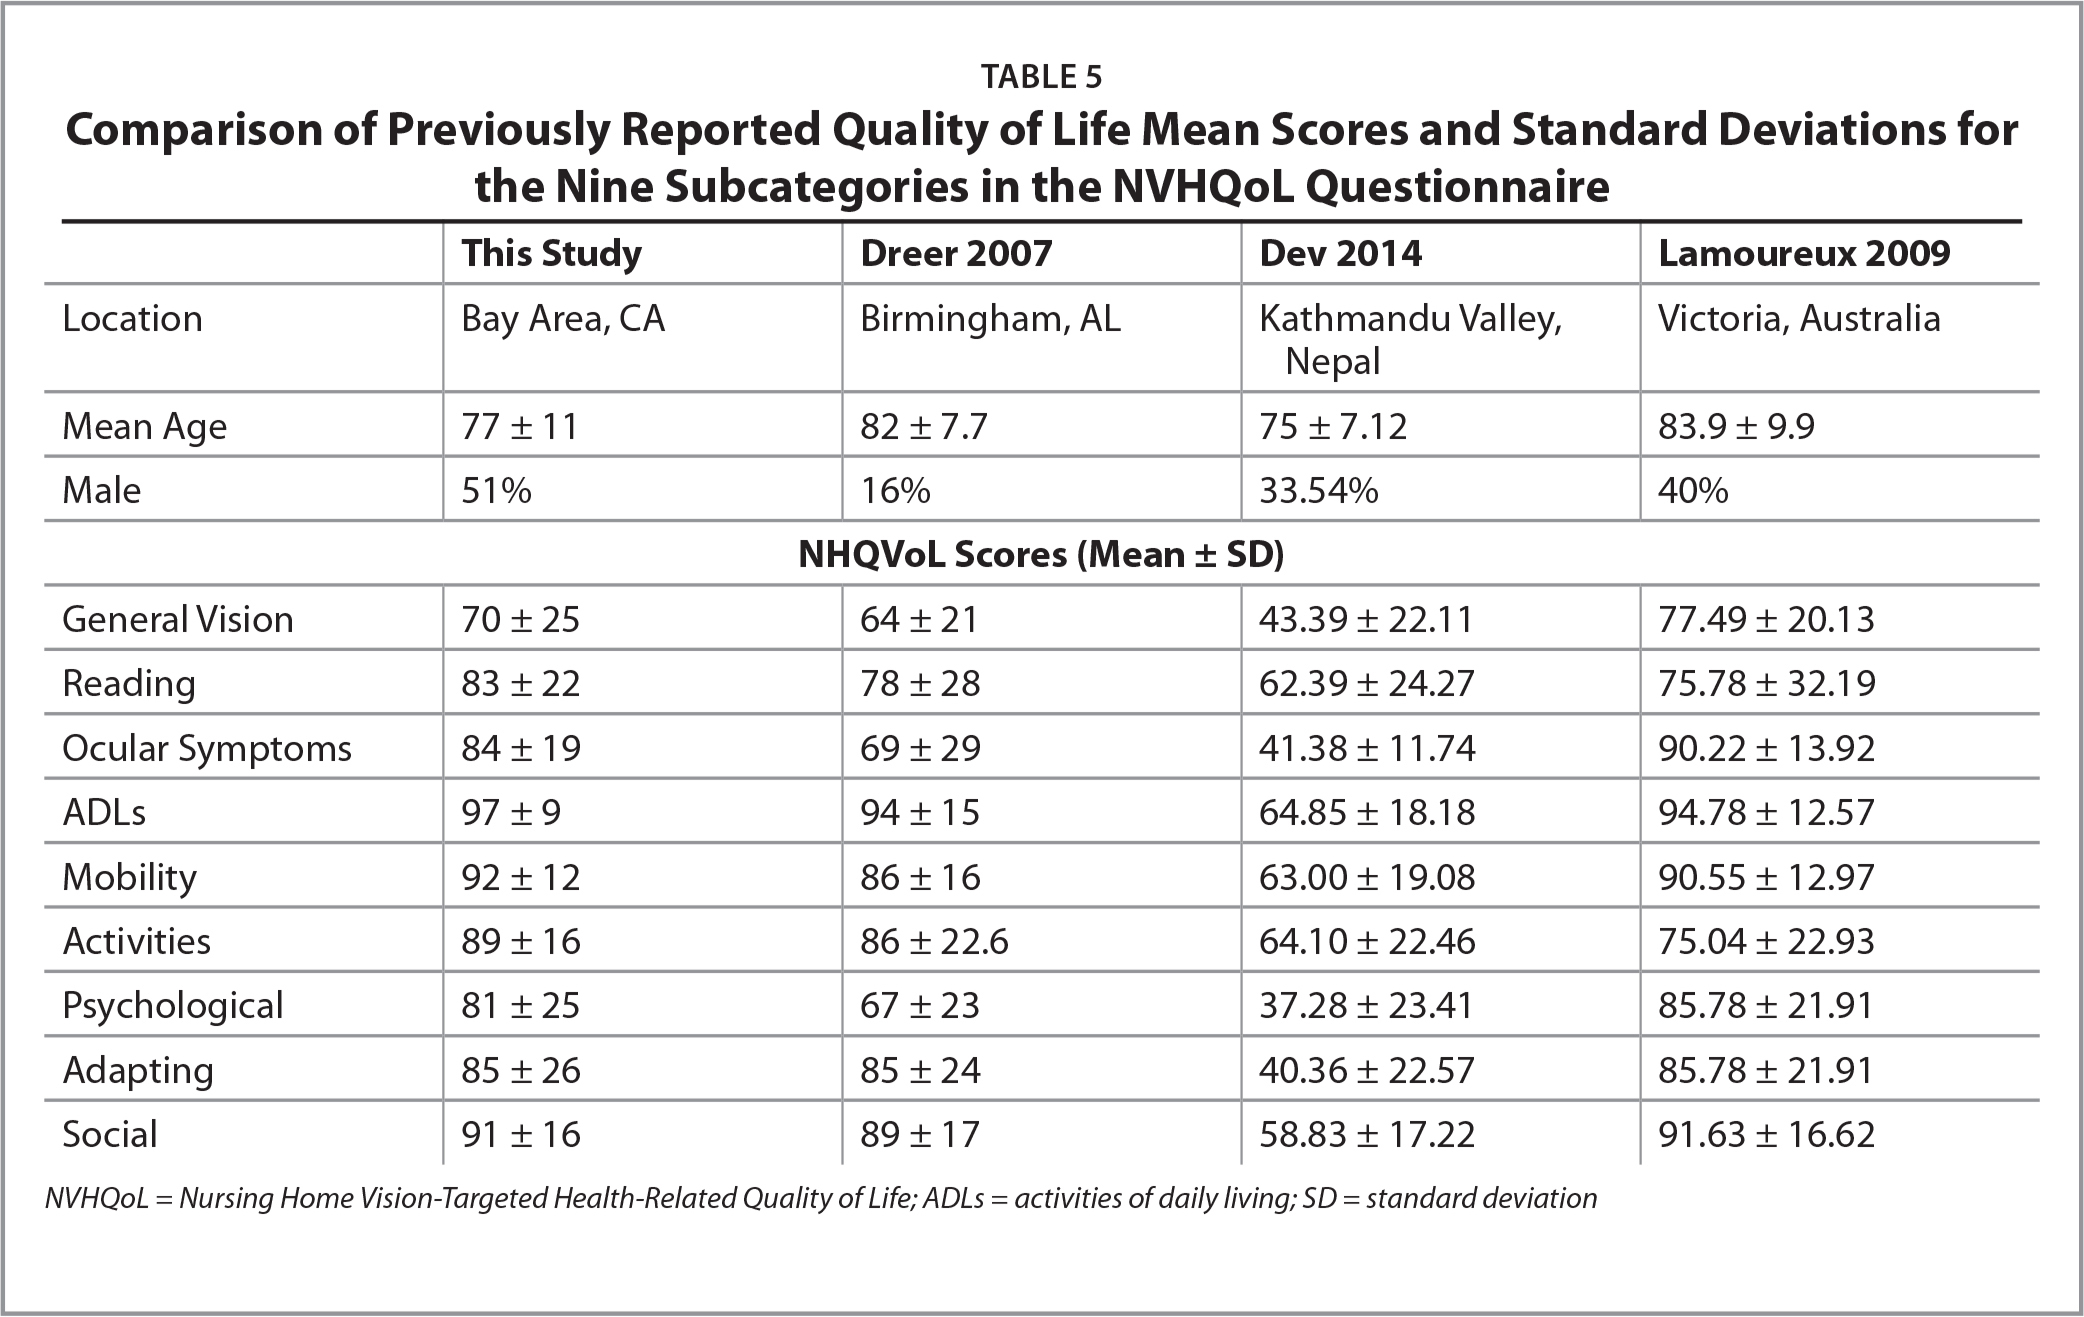 Comparison of Previously Reported Quality of Life Mean Scores and Standard Deviations for the Nine Subcategories in the NVHQoL Questionnaire